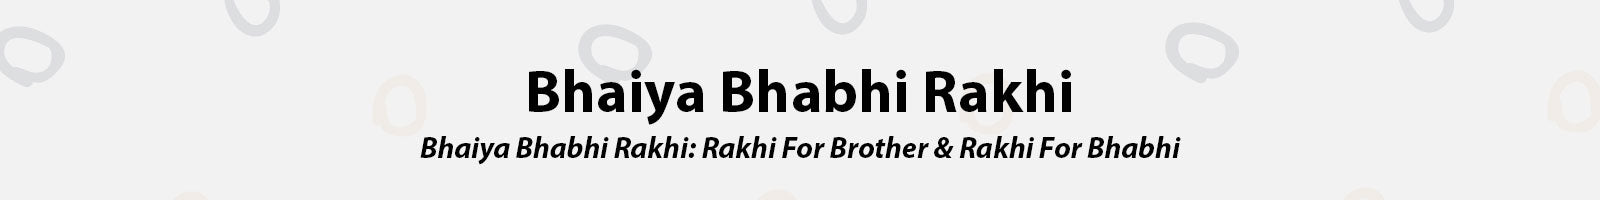 Bhaiya Bhabhi Rakhi: Rakhi For Brother, and Rakhi For Sister